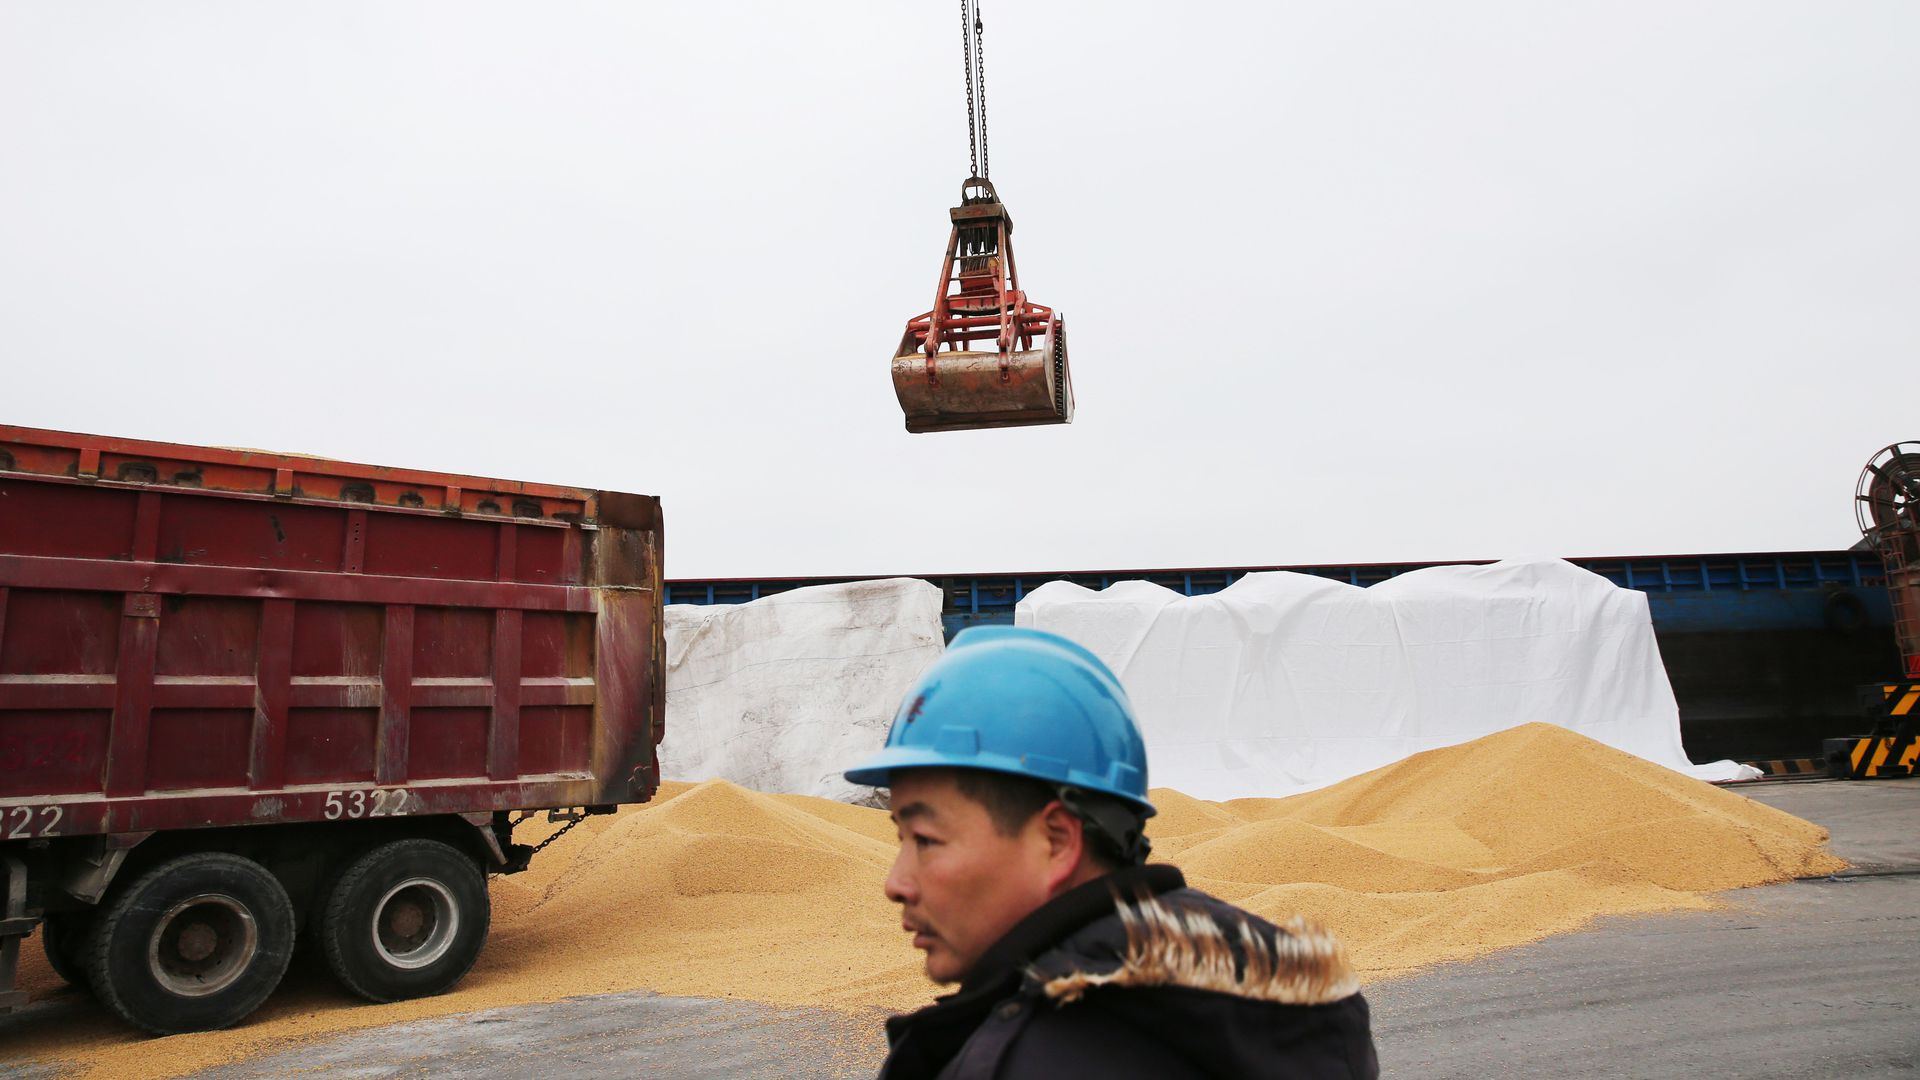 Man looks on as cargo lowered from ship